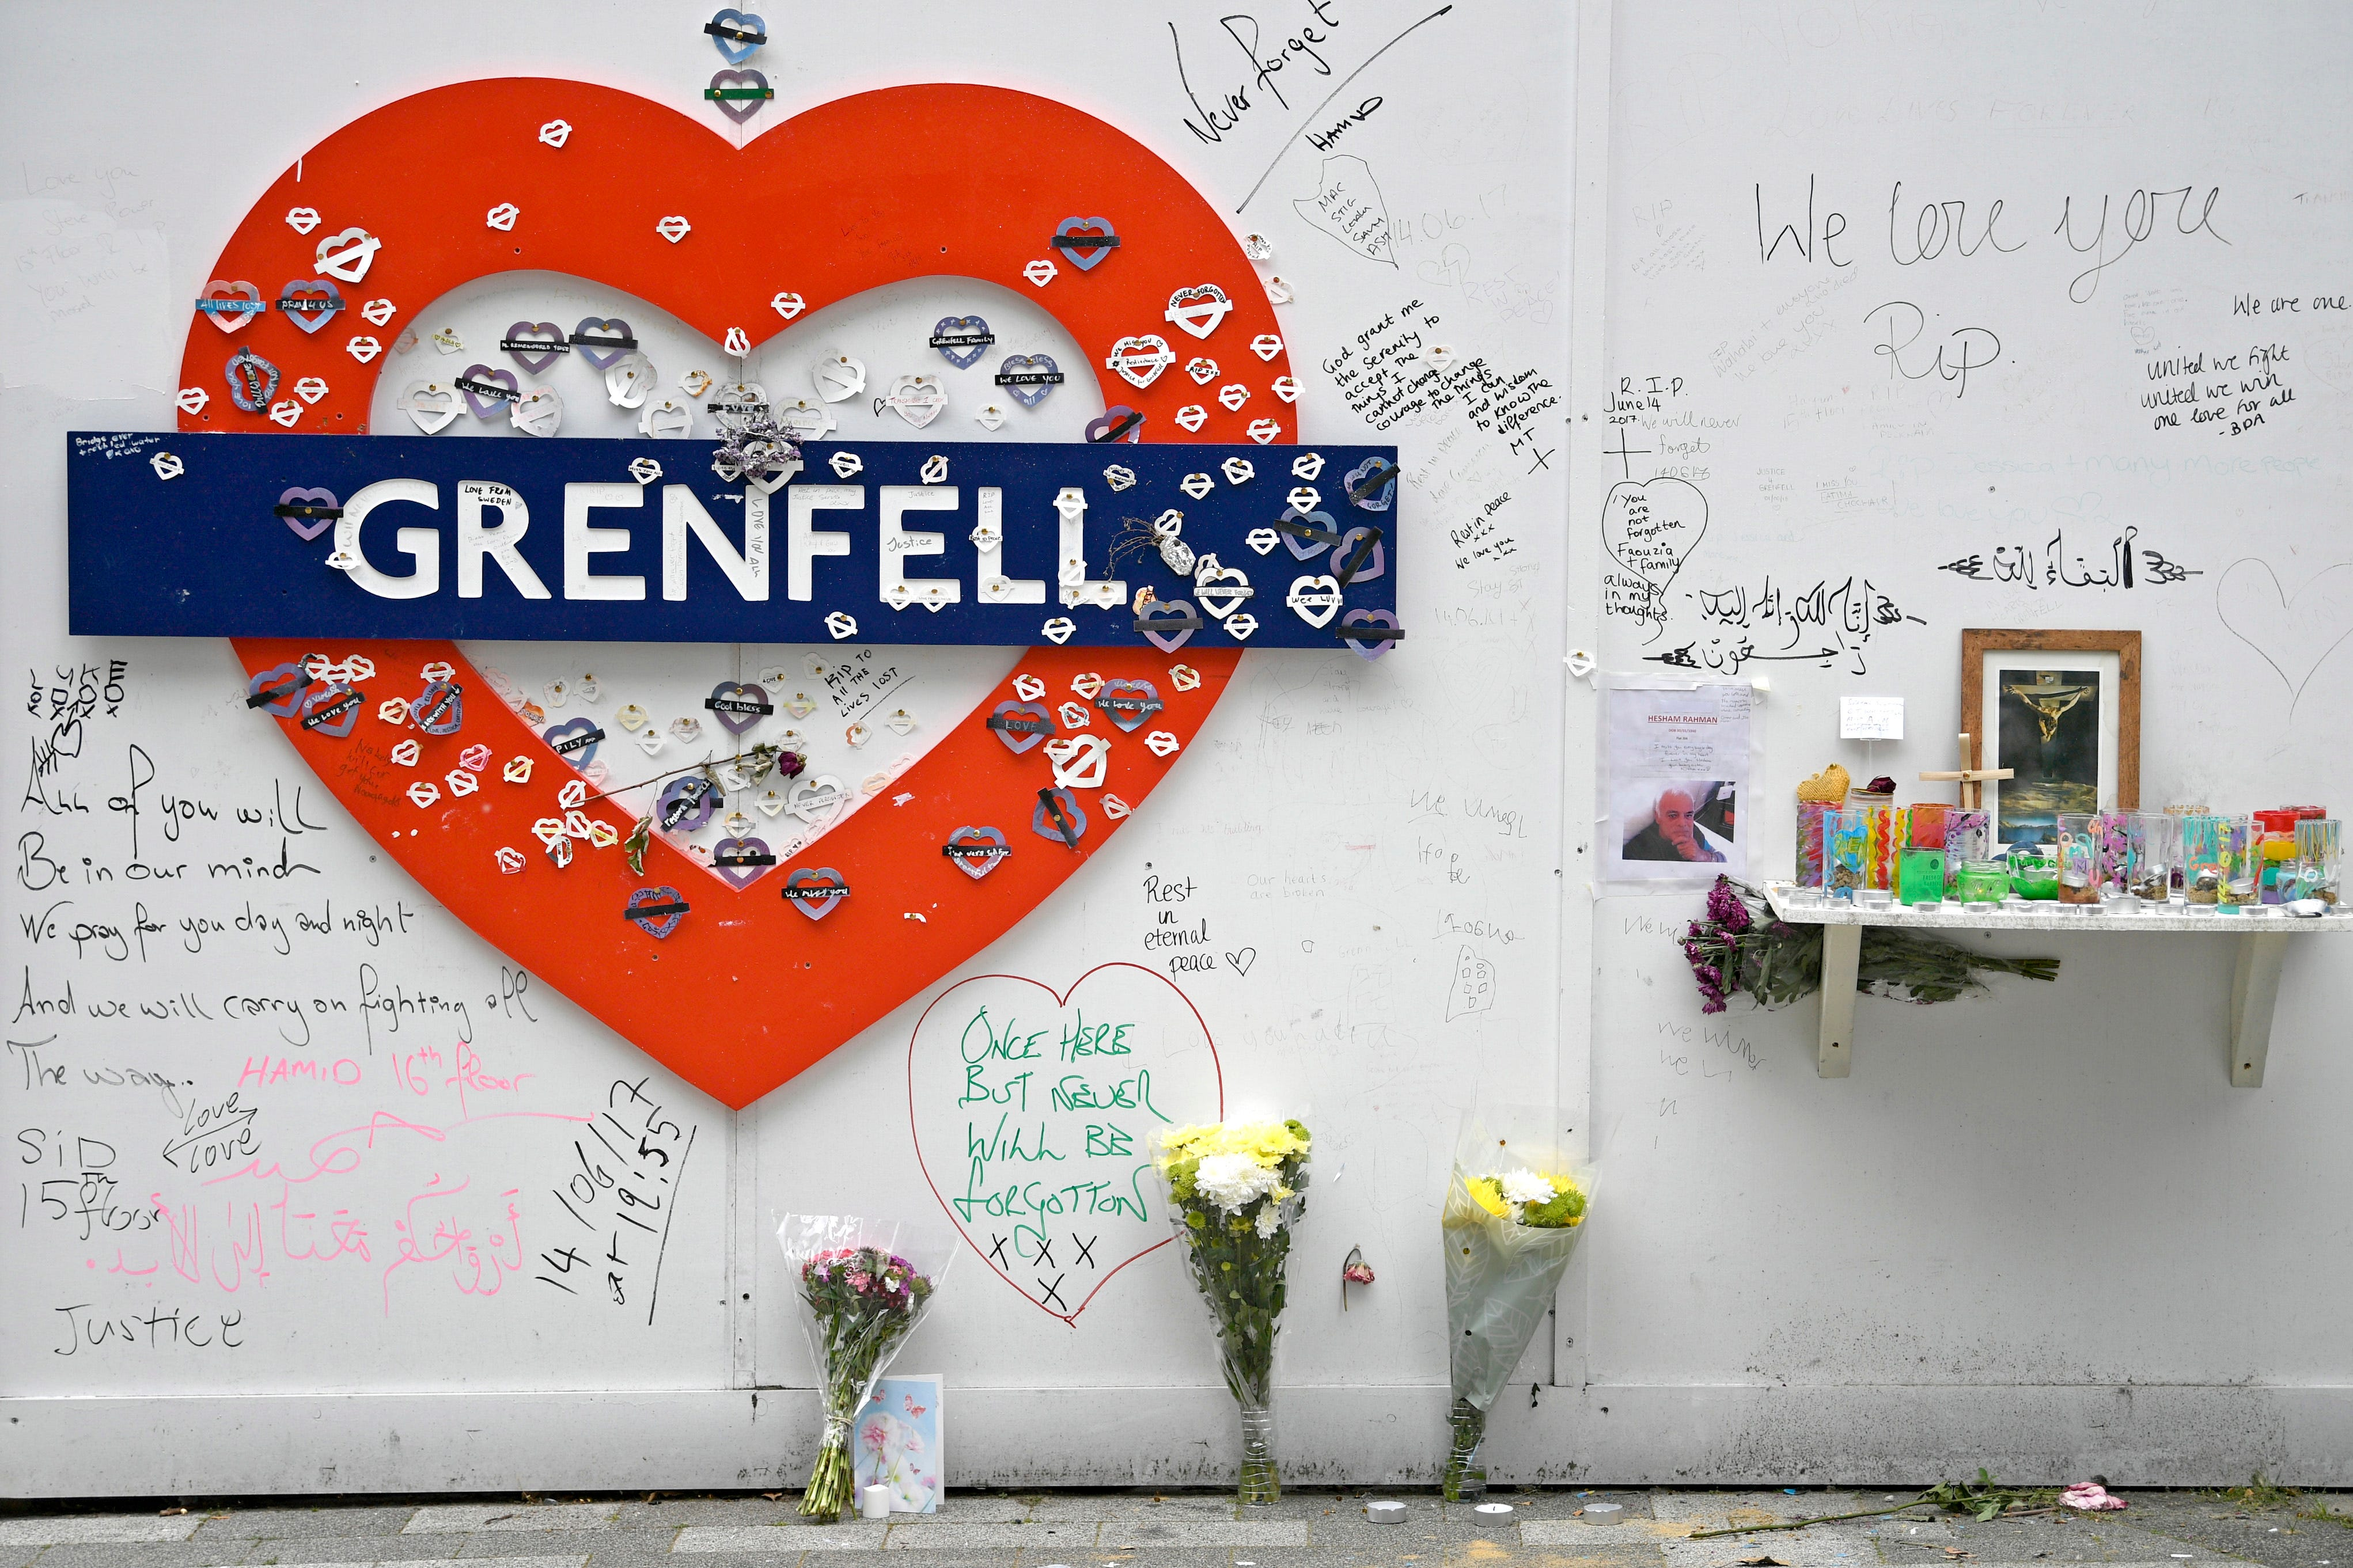 One year later, Britain remembers Grenfell Tower fire, London's deadliest tragedy since World War II